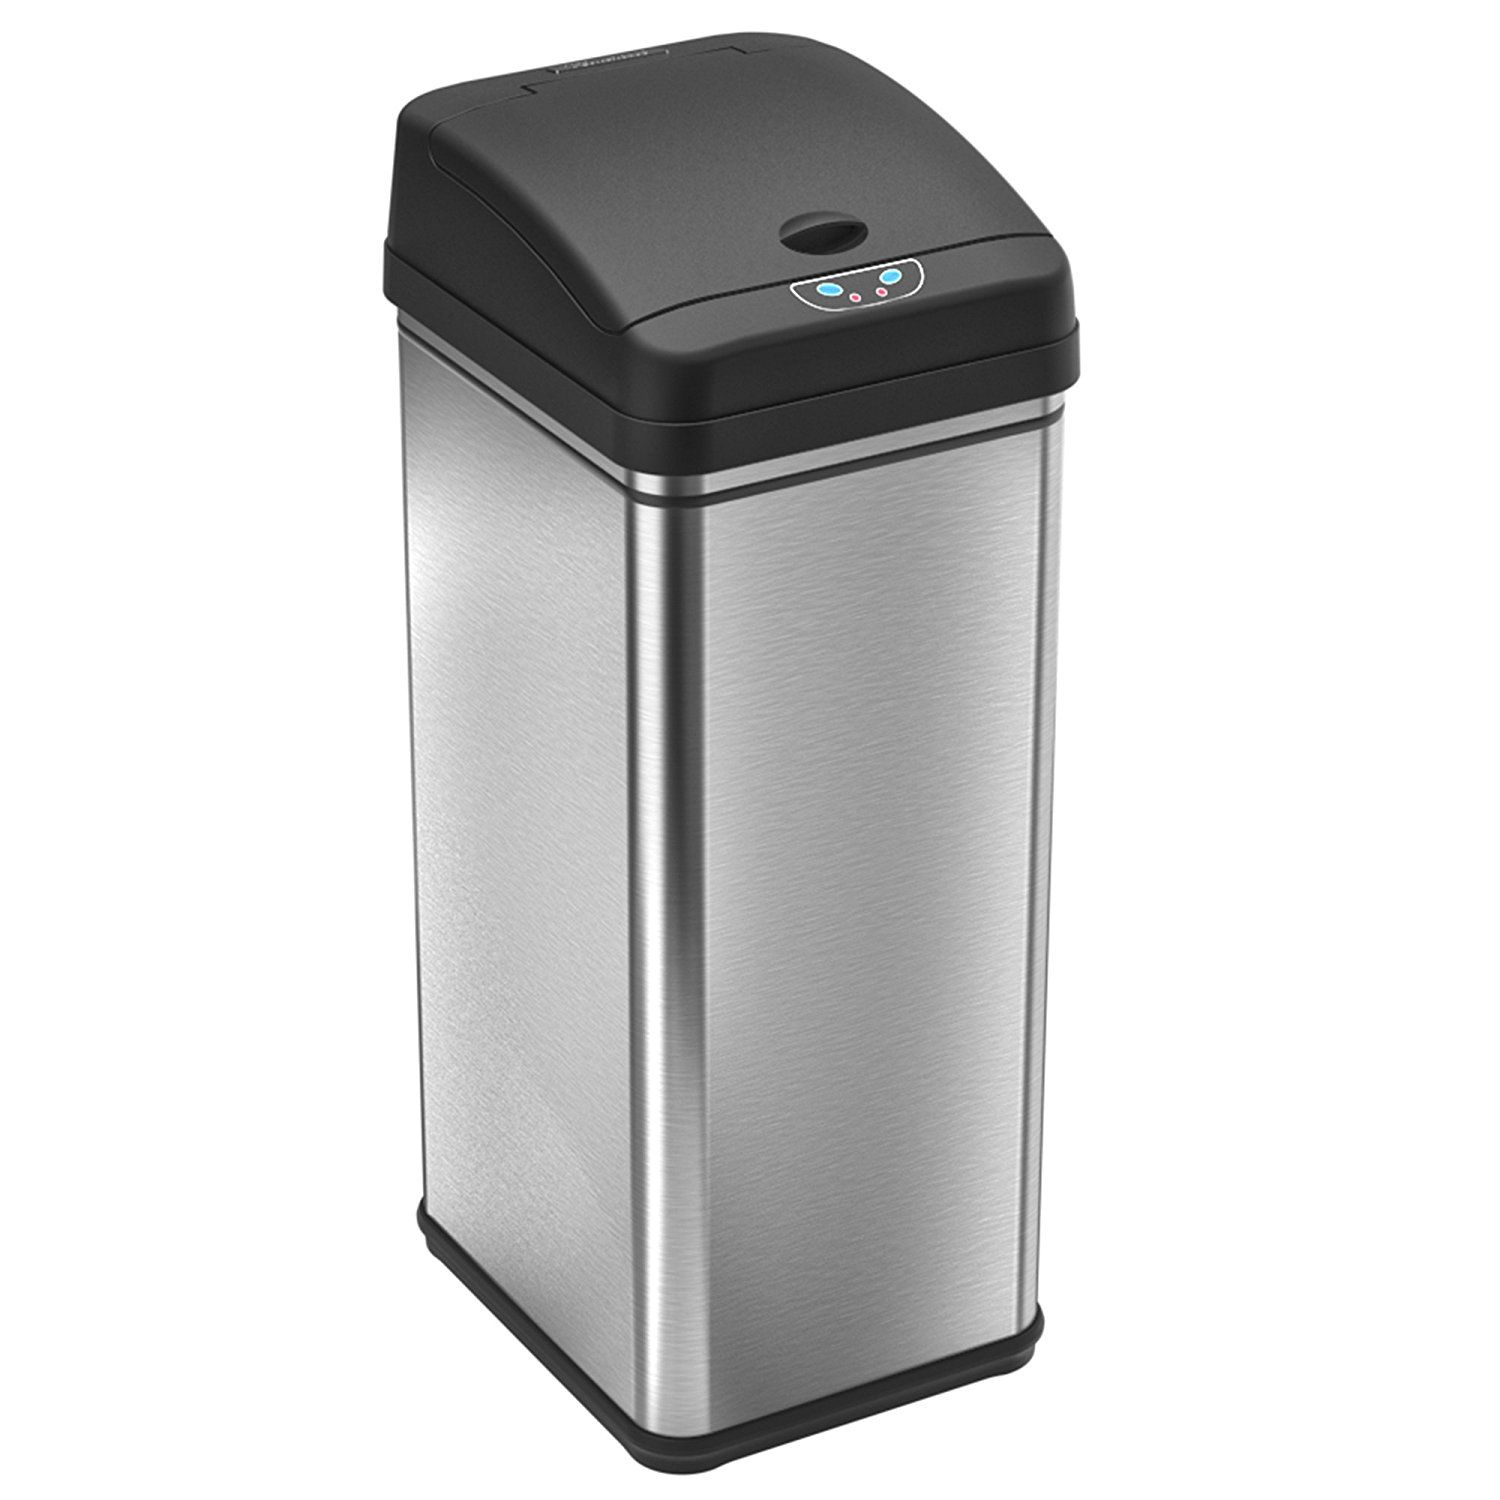 iTouchless 13 Gallon Touchless Sensor Kitchen Trash Can, Stainless Steel,  Odor Filter System - Walmart.com